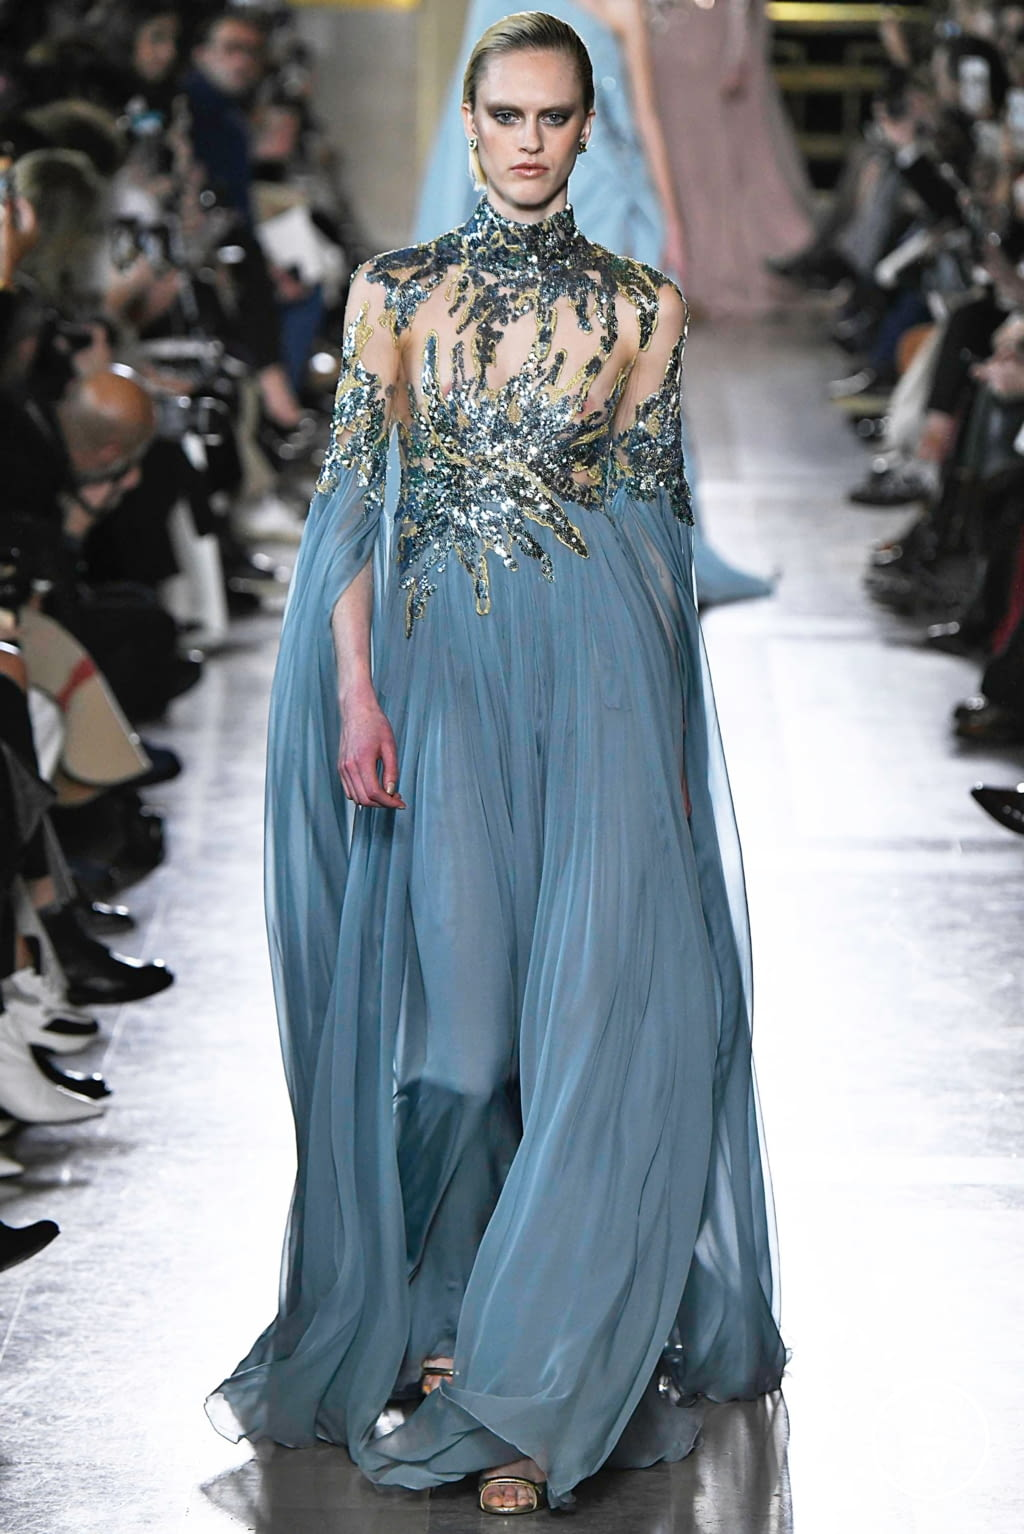 Fashion Week Paris Spring/Summer 2019 look 7 from the Elie Saab collection 高级定制